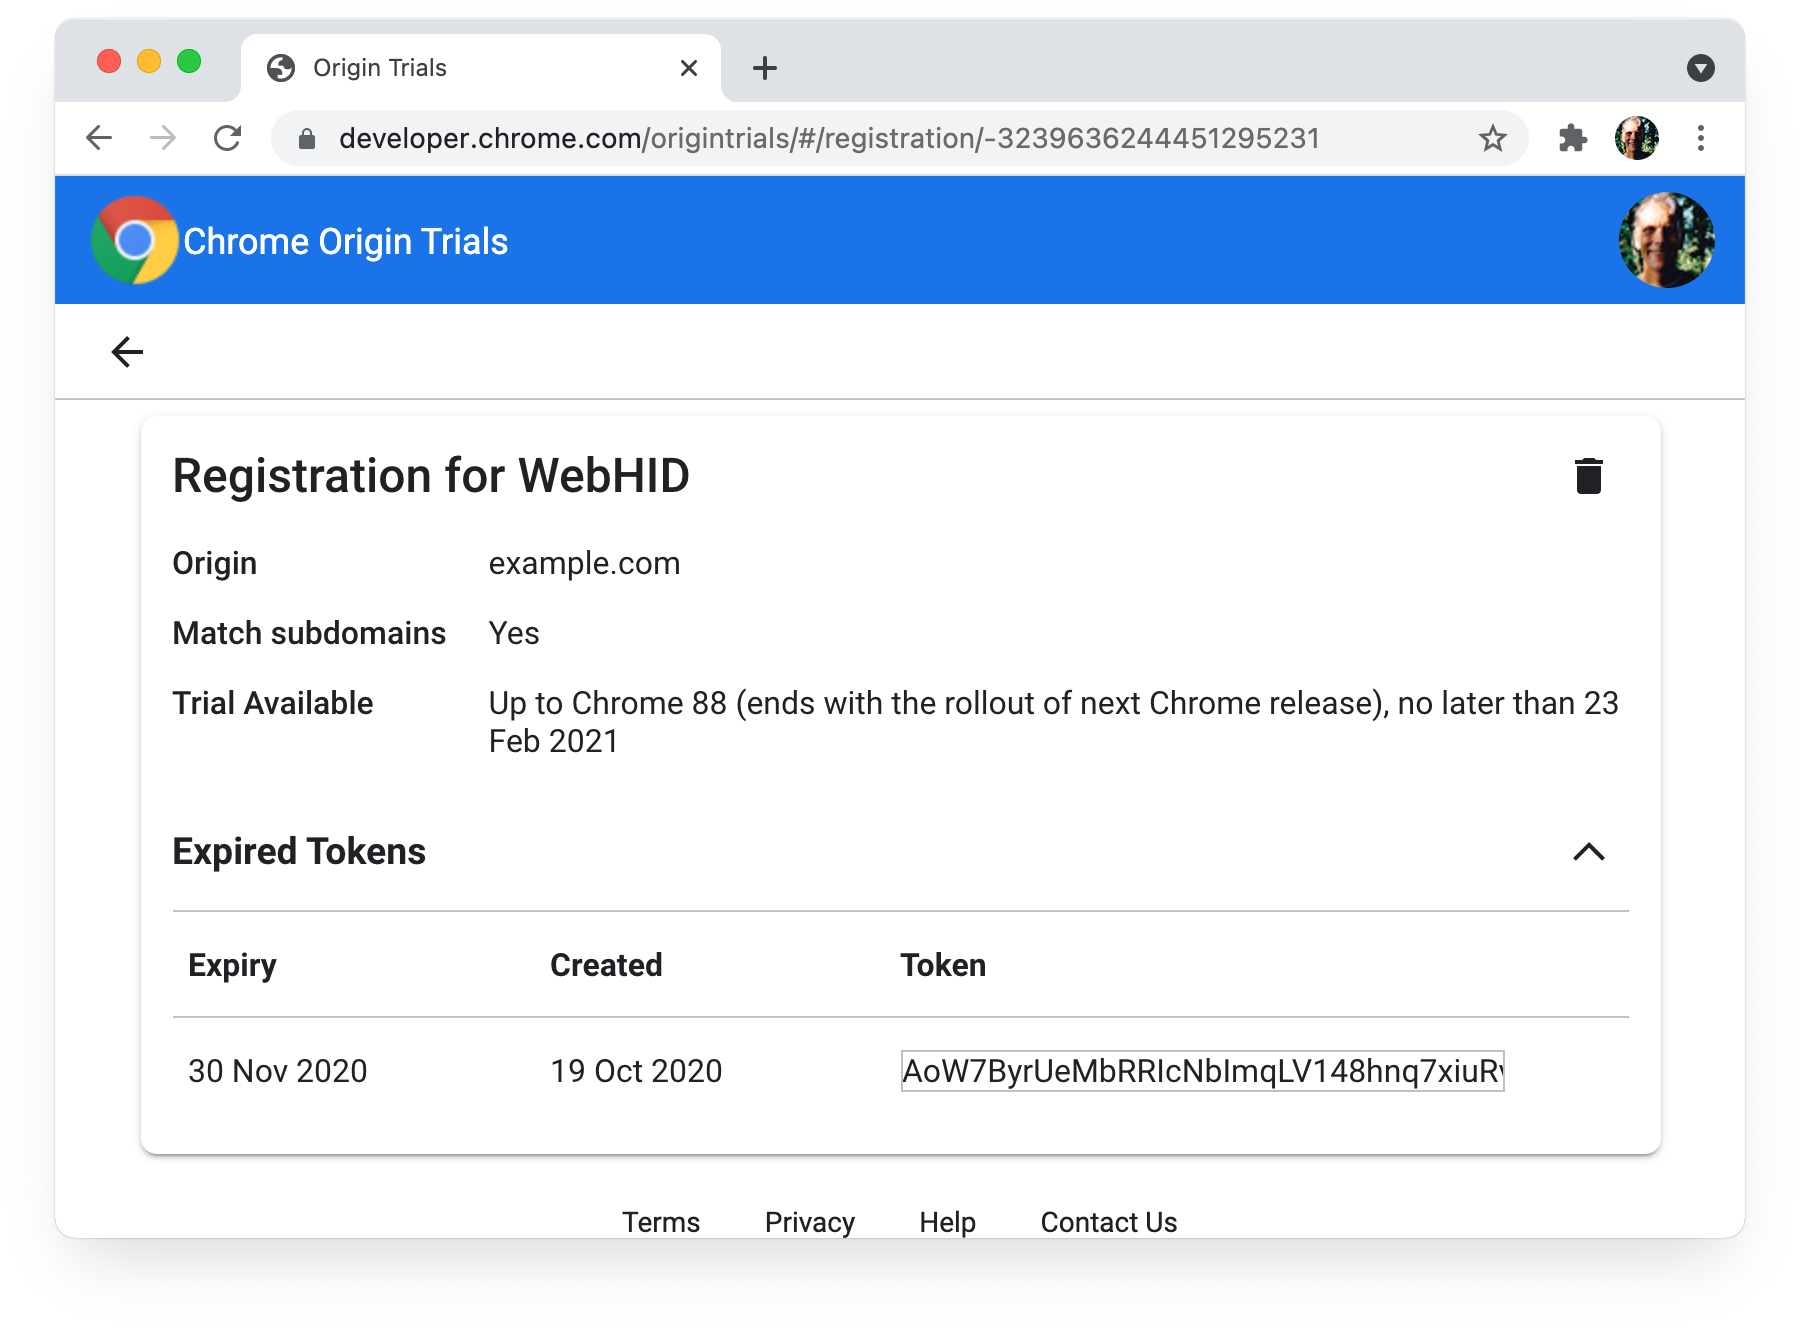 Chrome origin trials  My Registrations page showing expired tokens